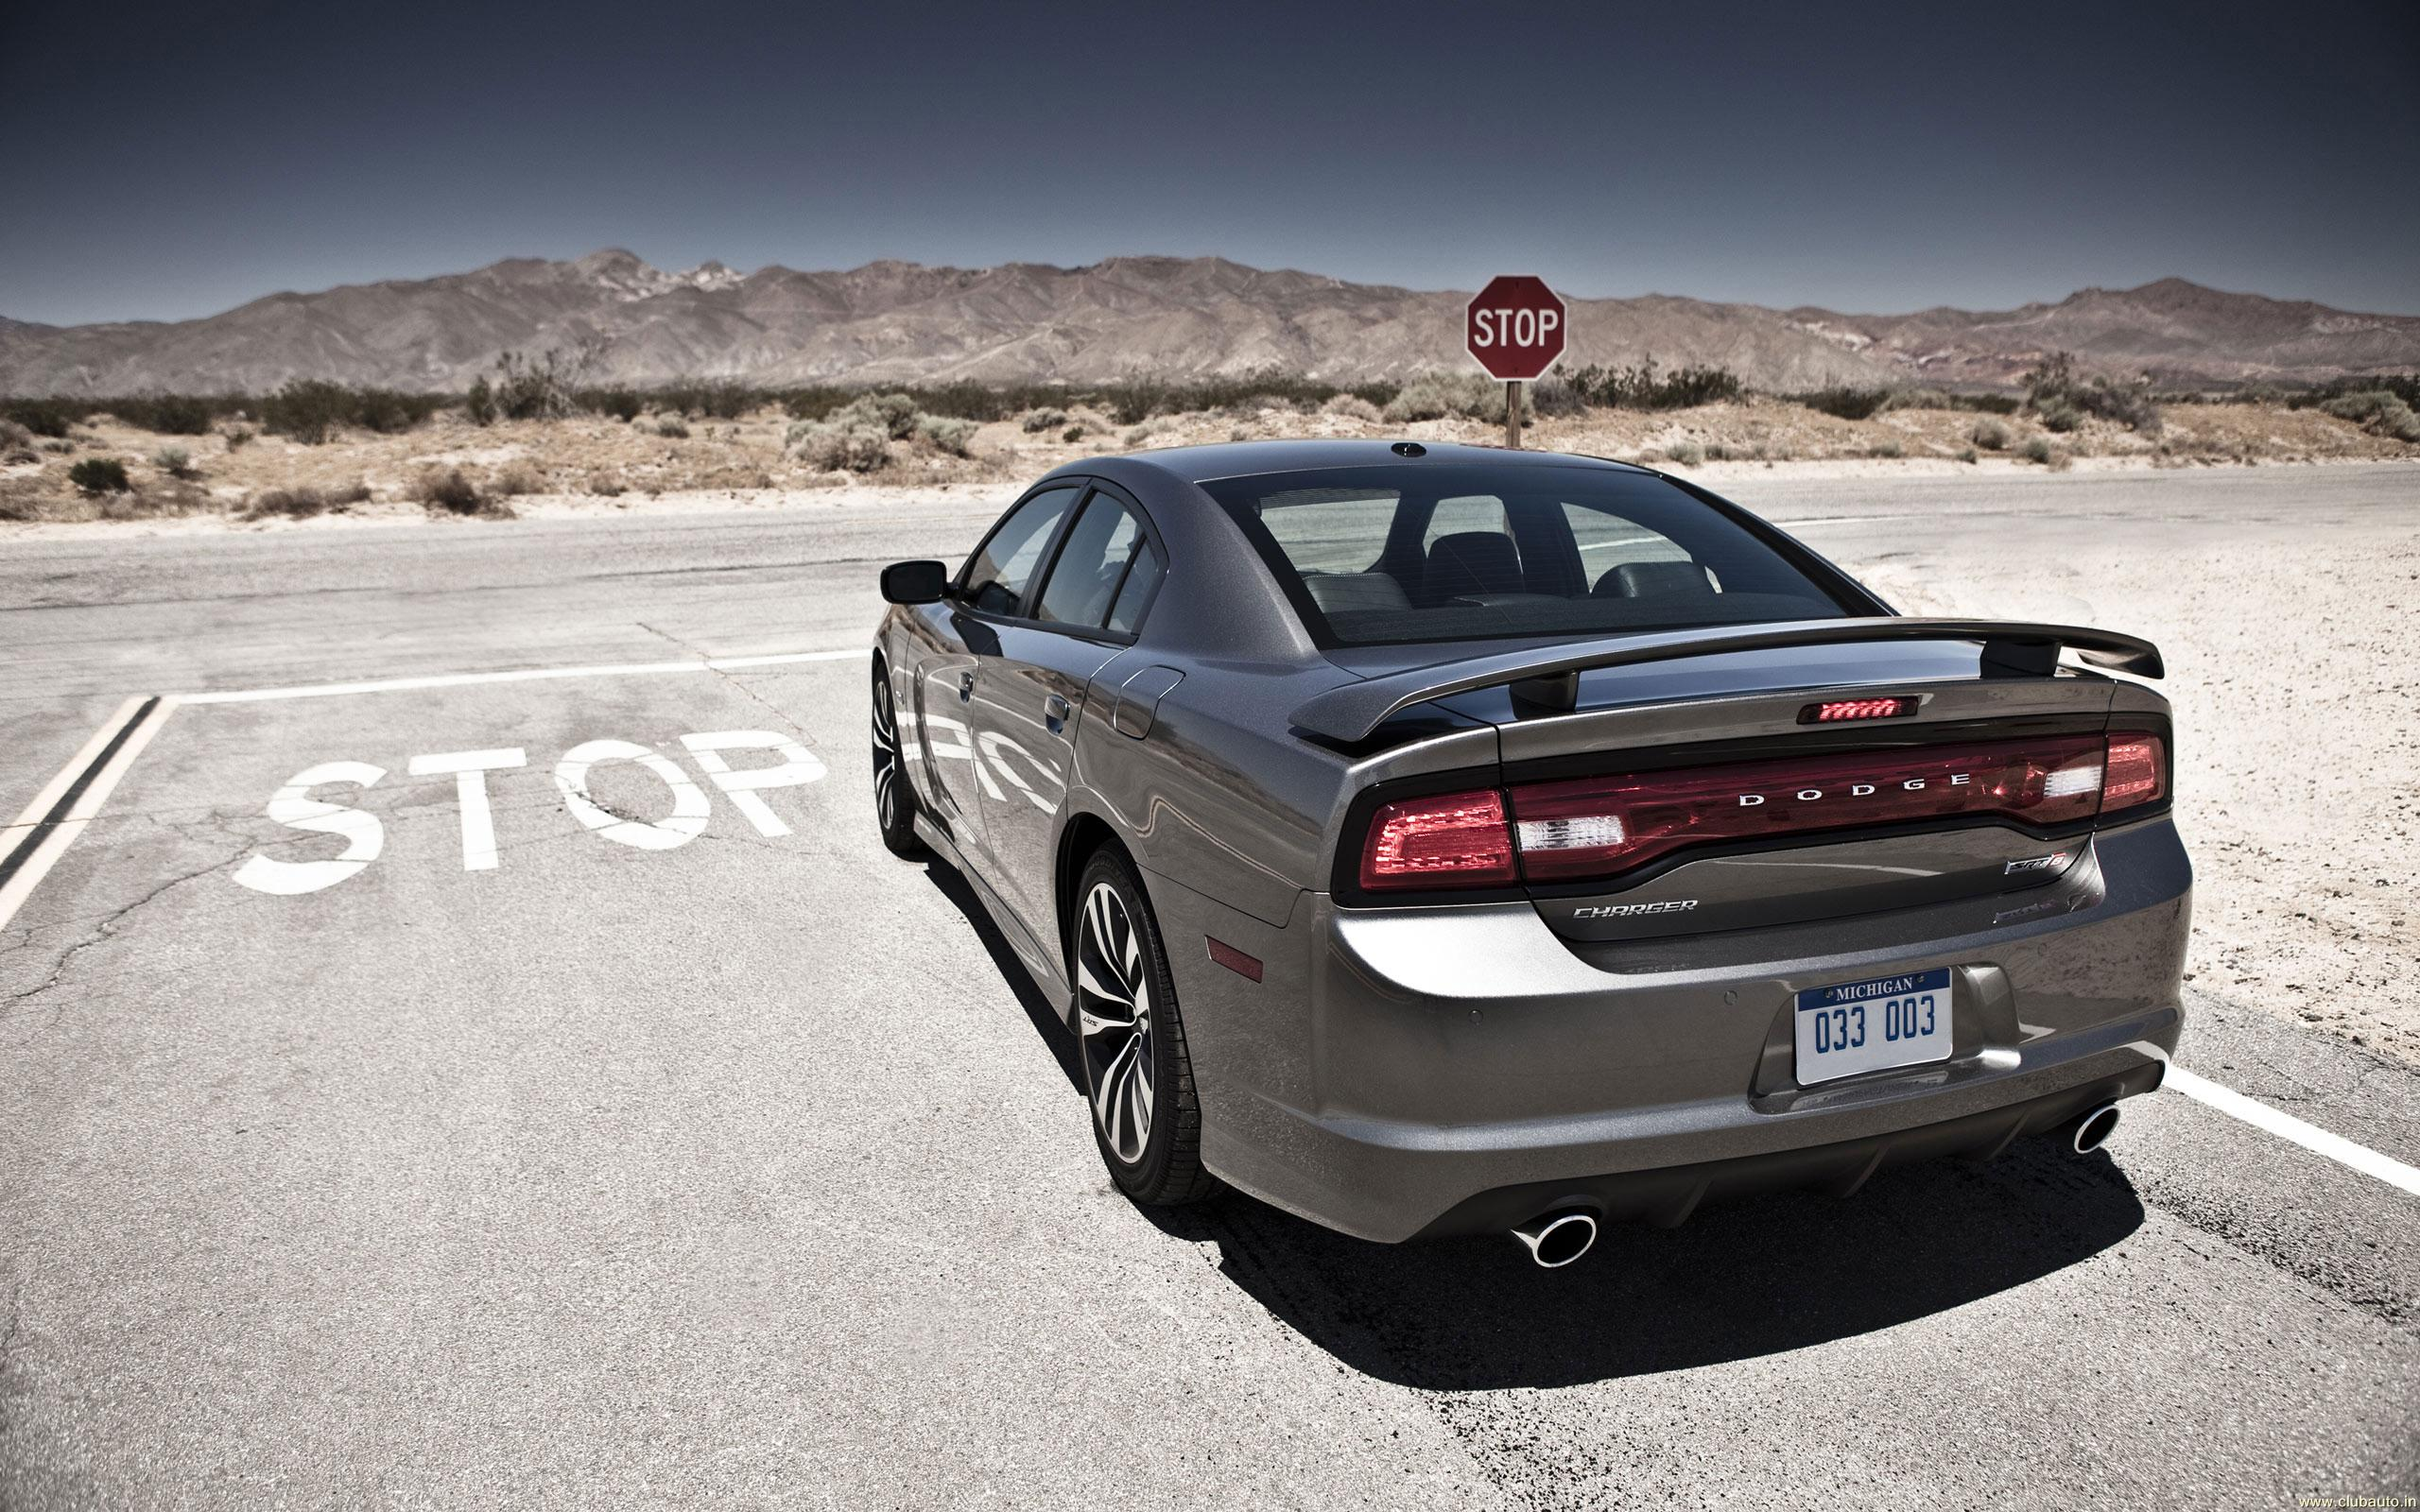 Wallpapers Cars Dodge Charger SRT8 Dodge Charger SRT8 high 2560x1600